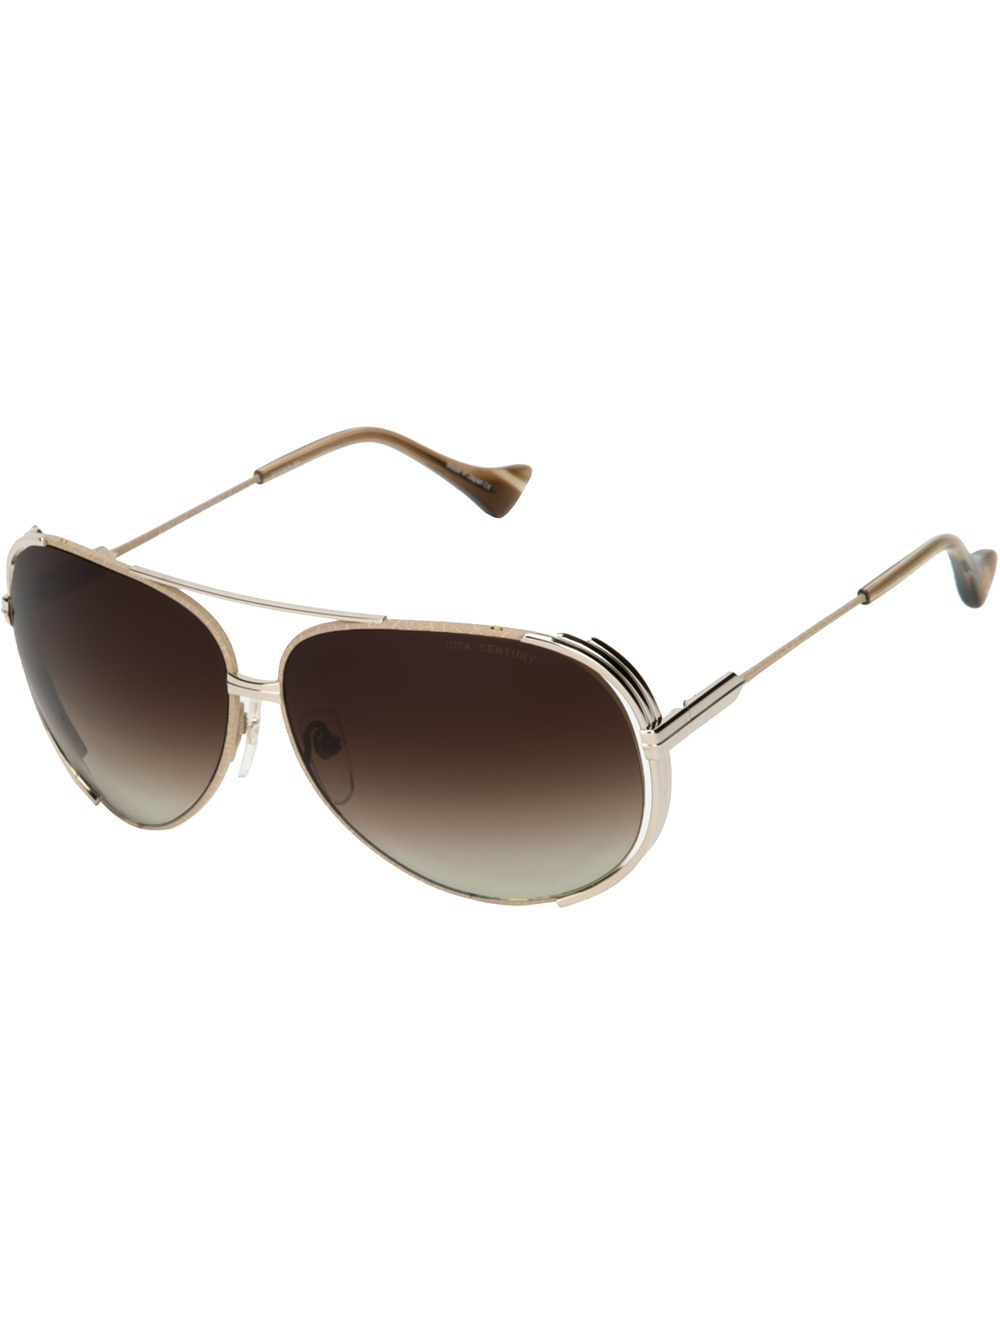 Dita eyewear Century Sunglasses in Metallic | Lyst Dita Eyewear